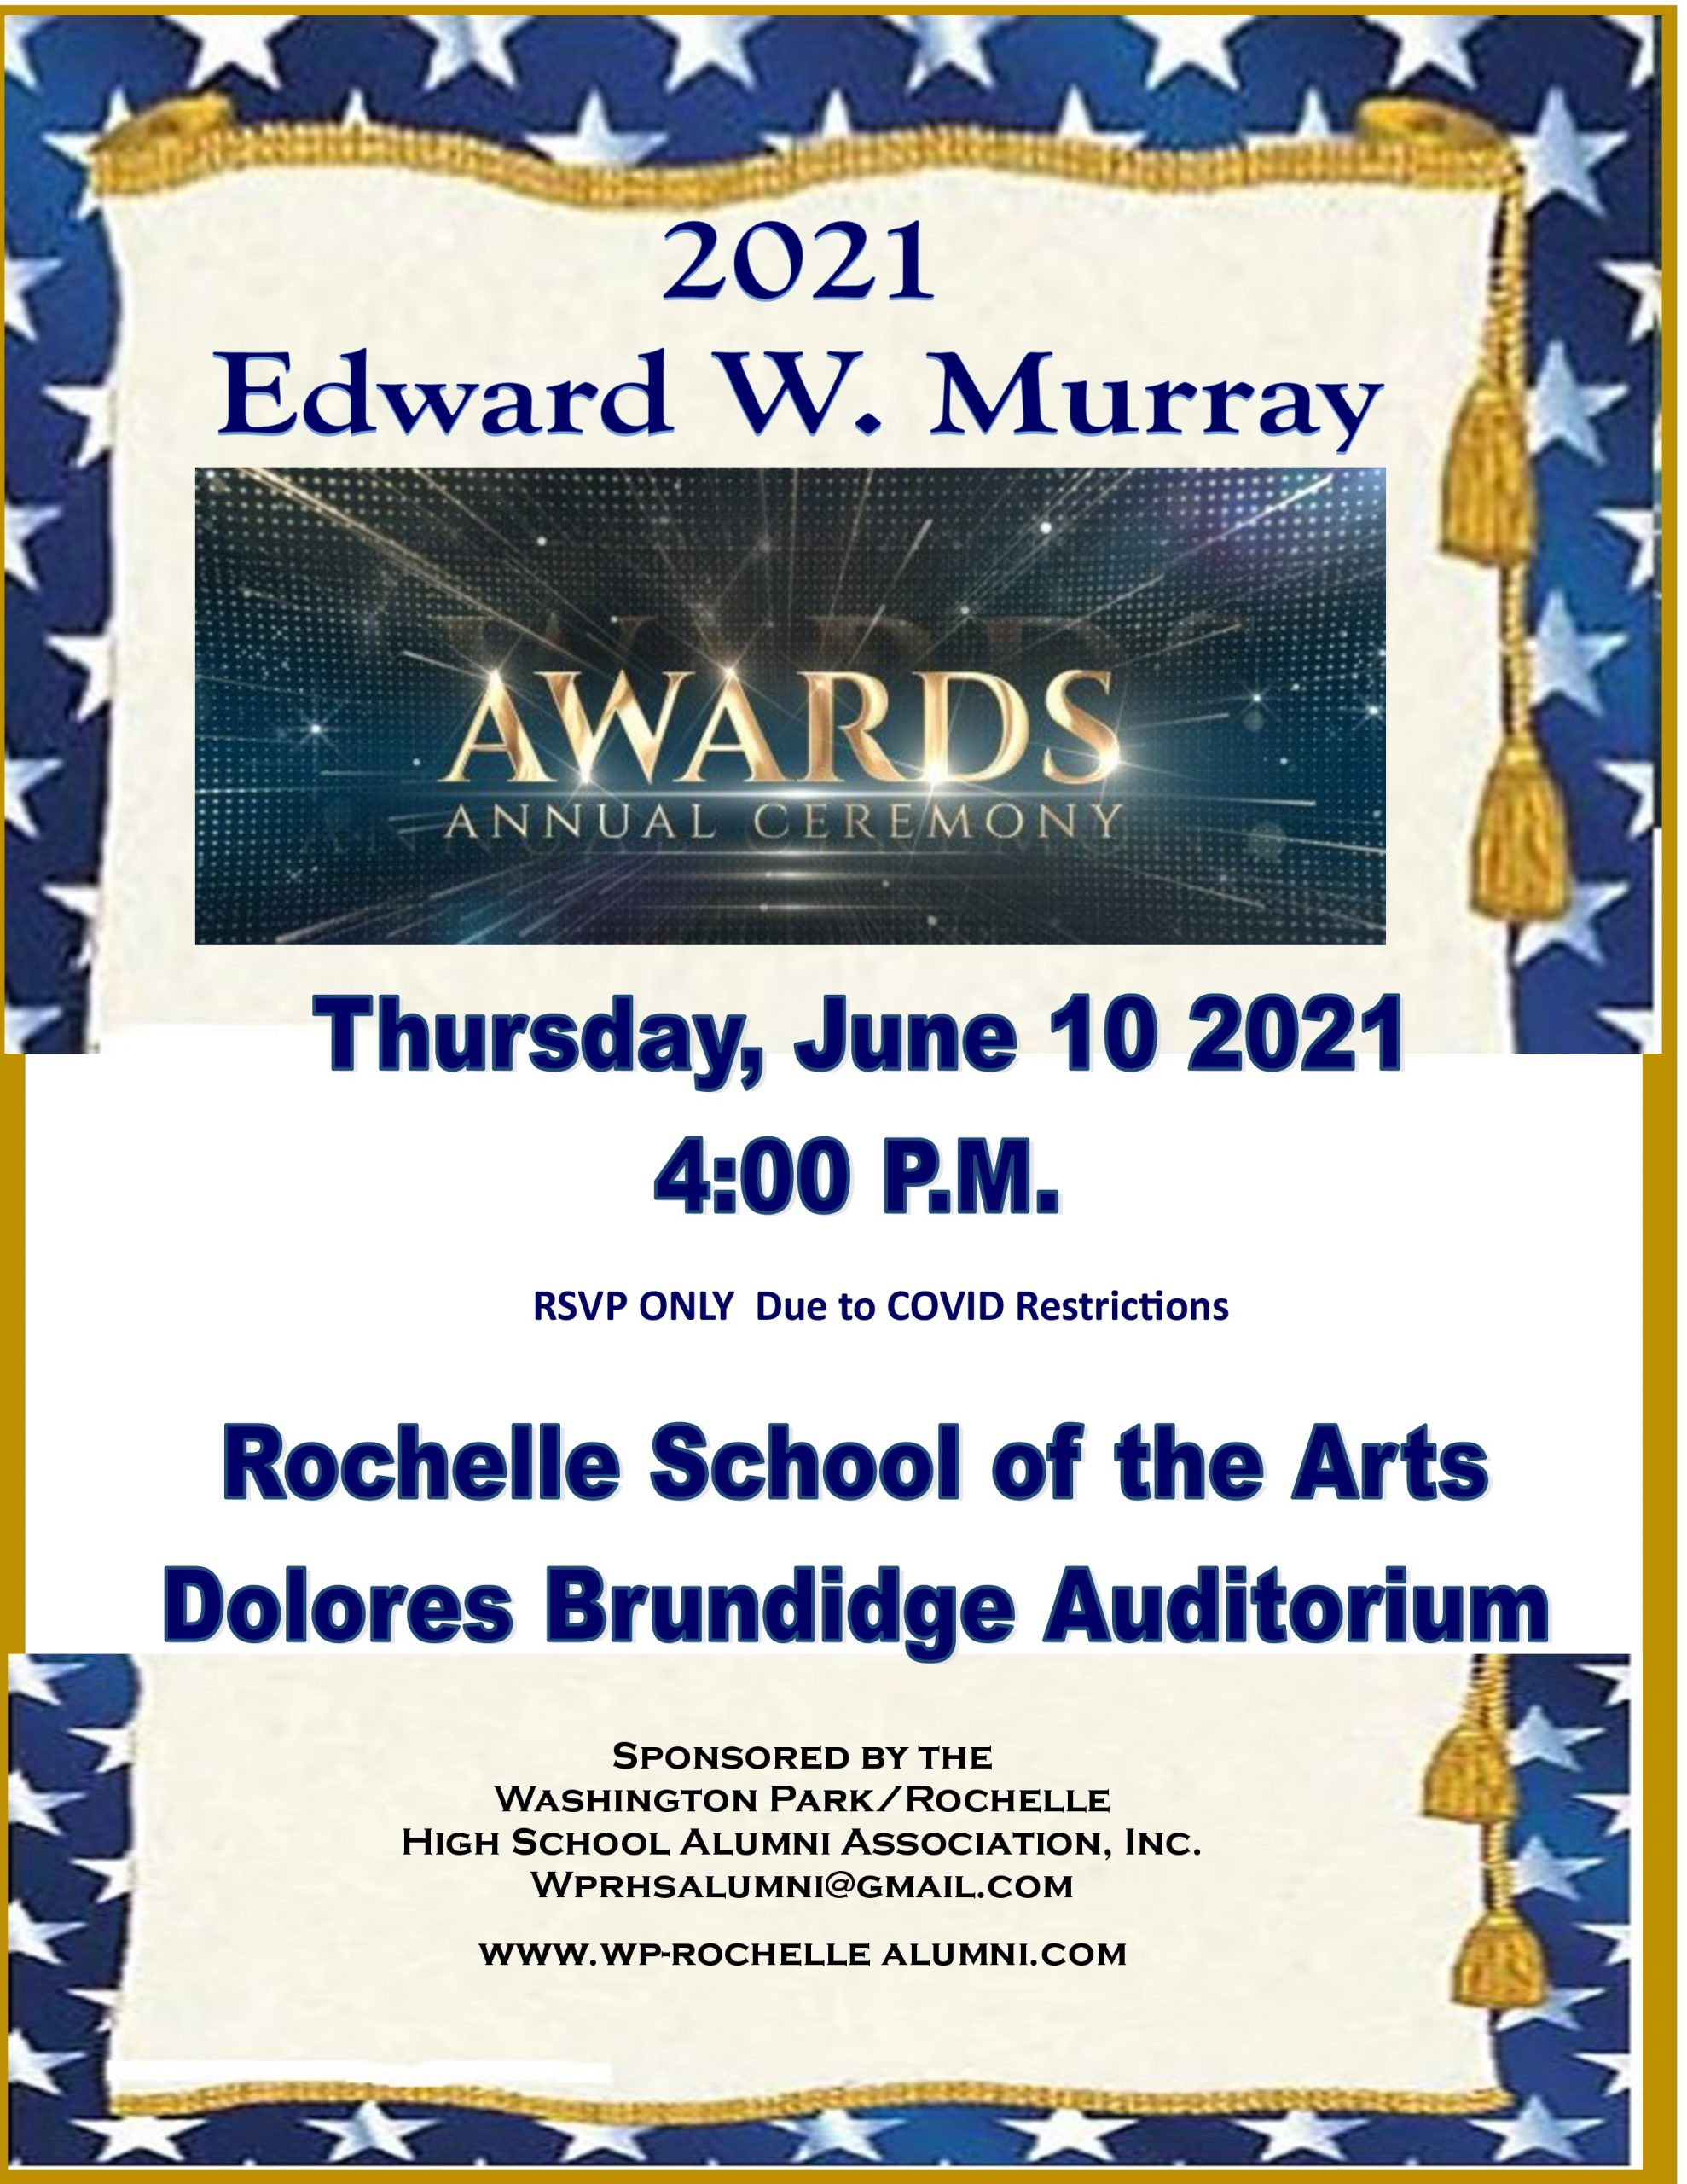 Edward W. Murray Annual Awards Ceremony